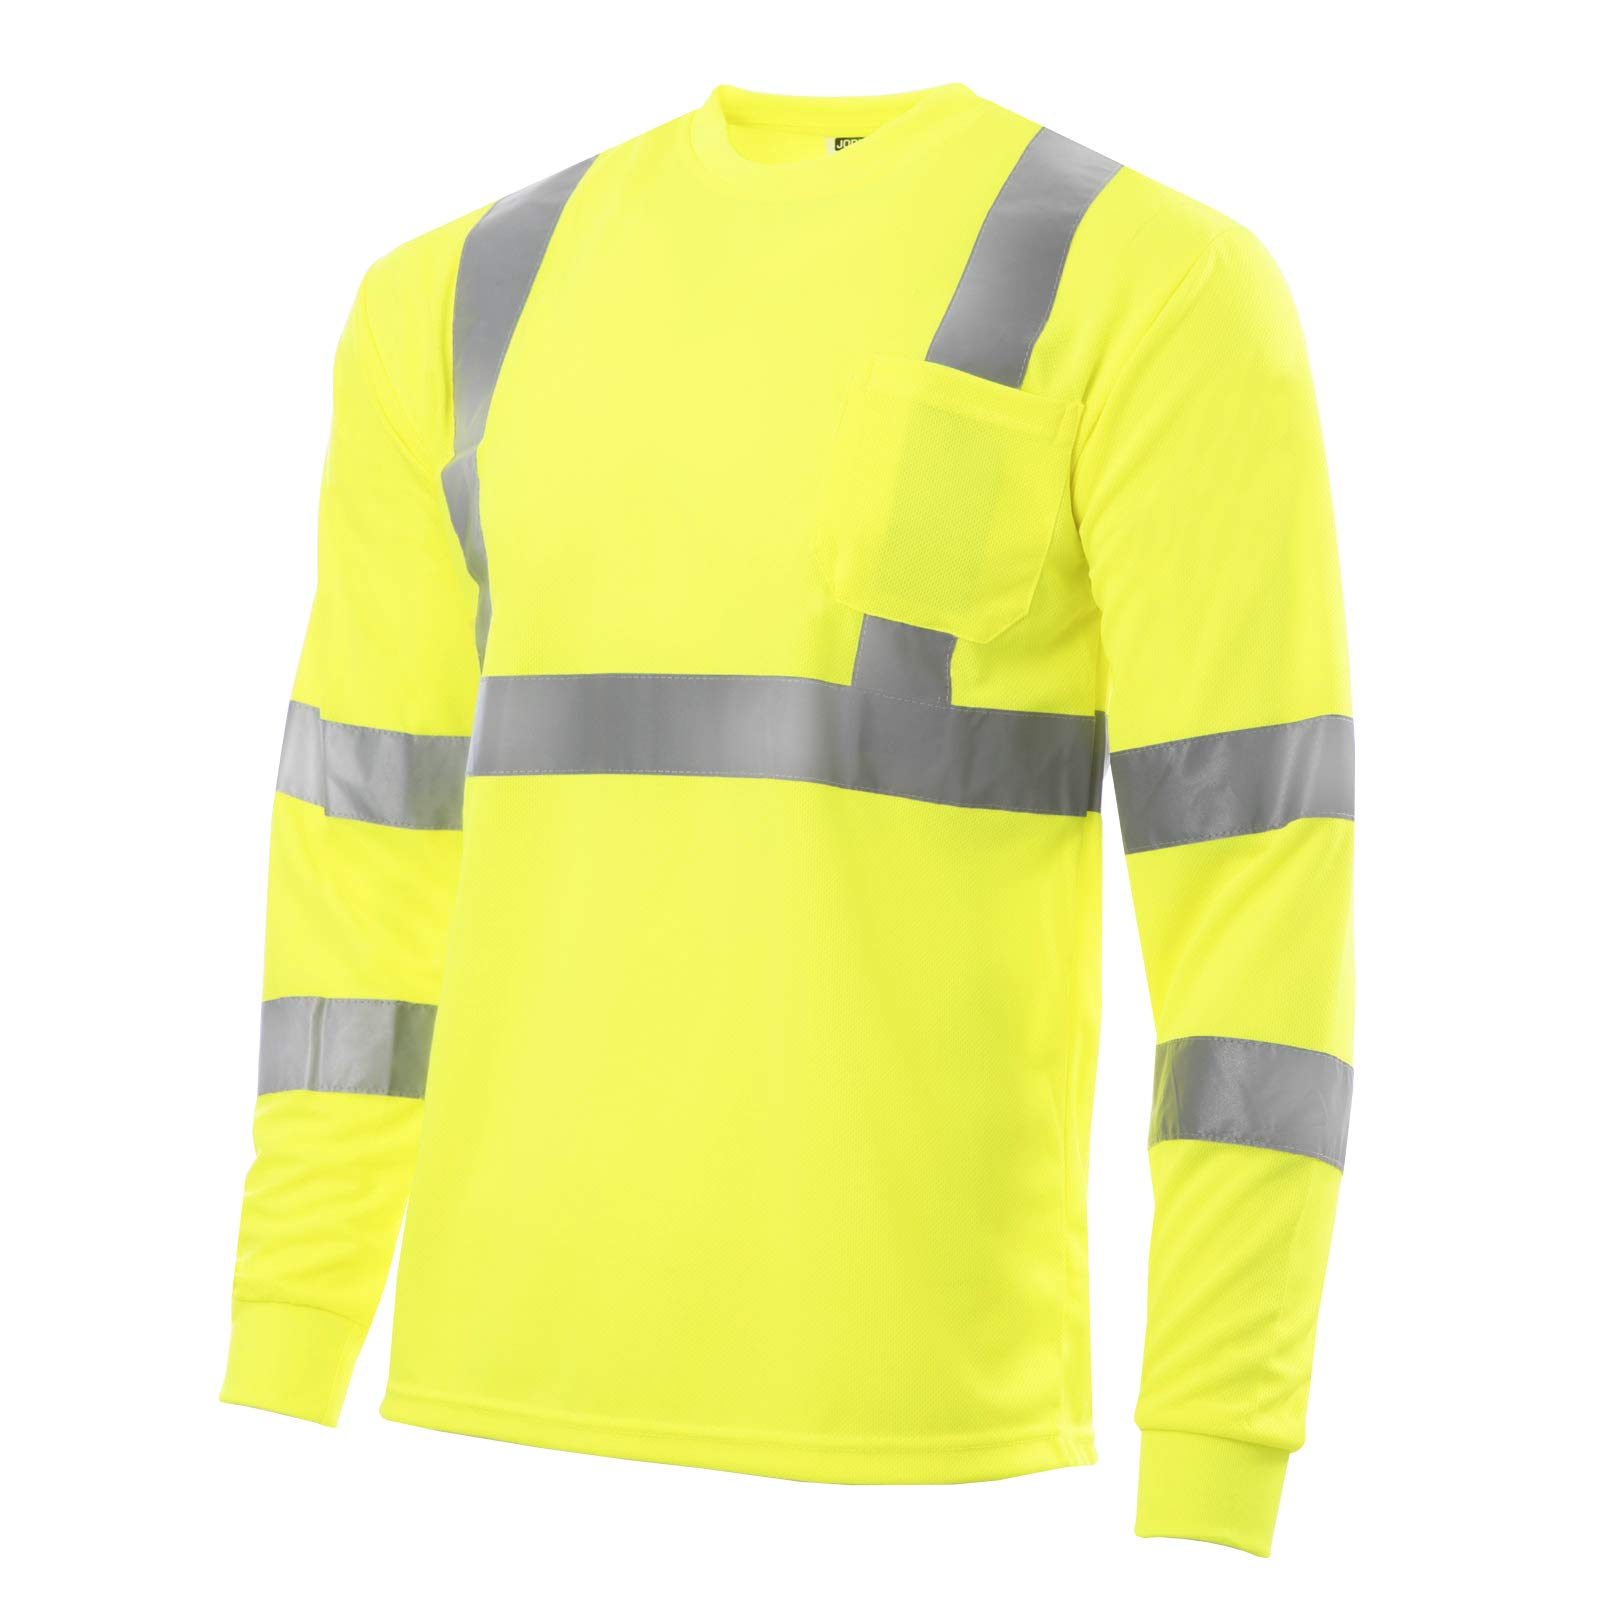 JORESTECH Safety T Shirt Reflective High Visibility Long Sleeve Yellow/Lime ANSI Class 3 Level 2 Type R TS-02 (L) by JORESTECH